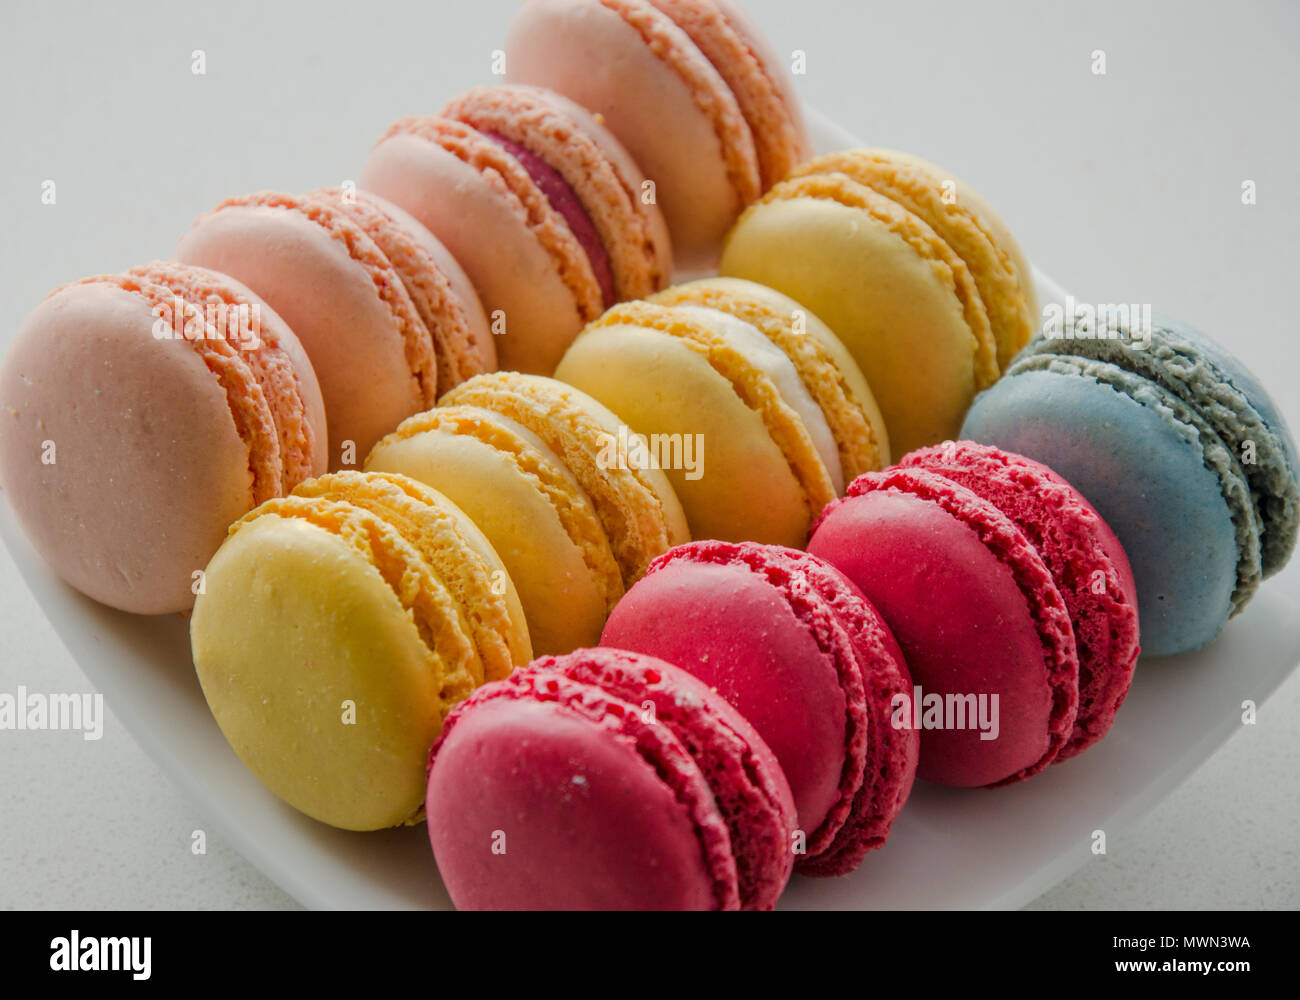 Delicious Colourful French Macarons on a plate as delicate savory dessert - Stock Image